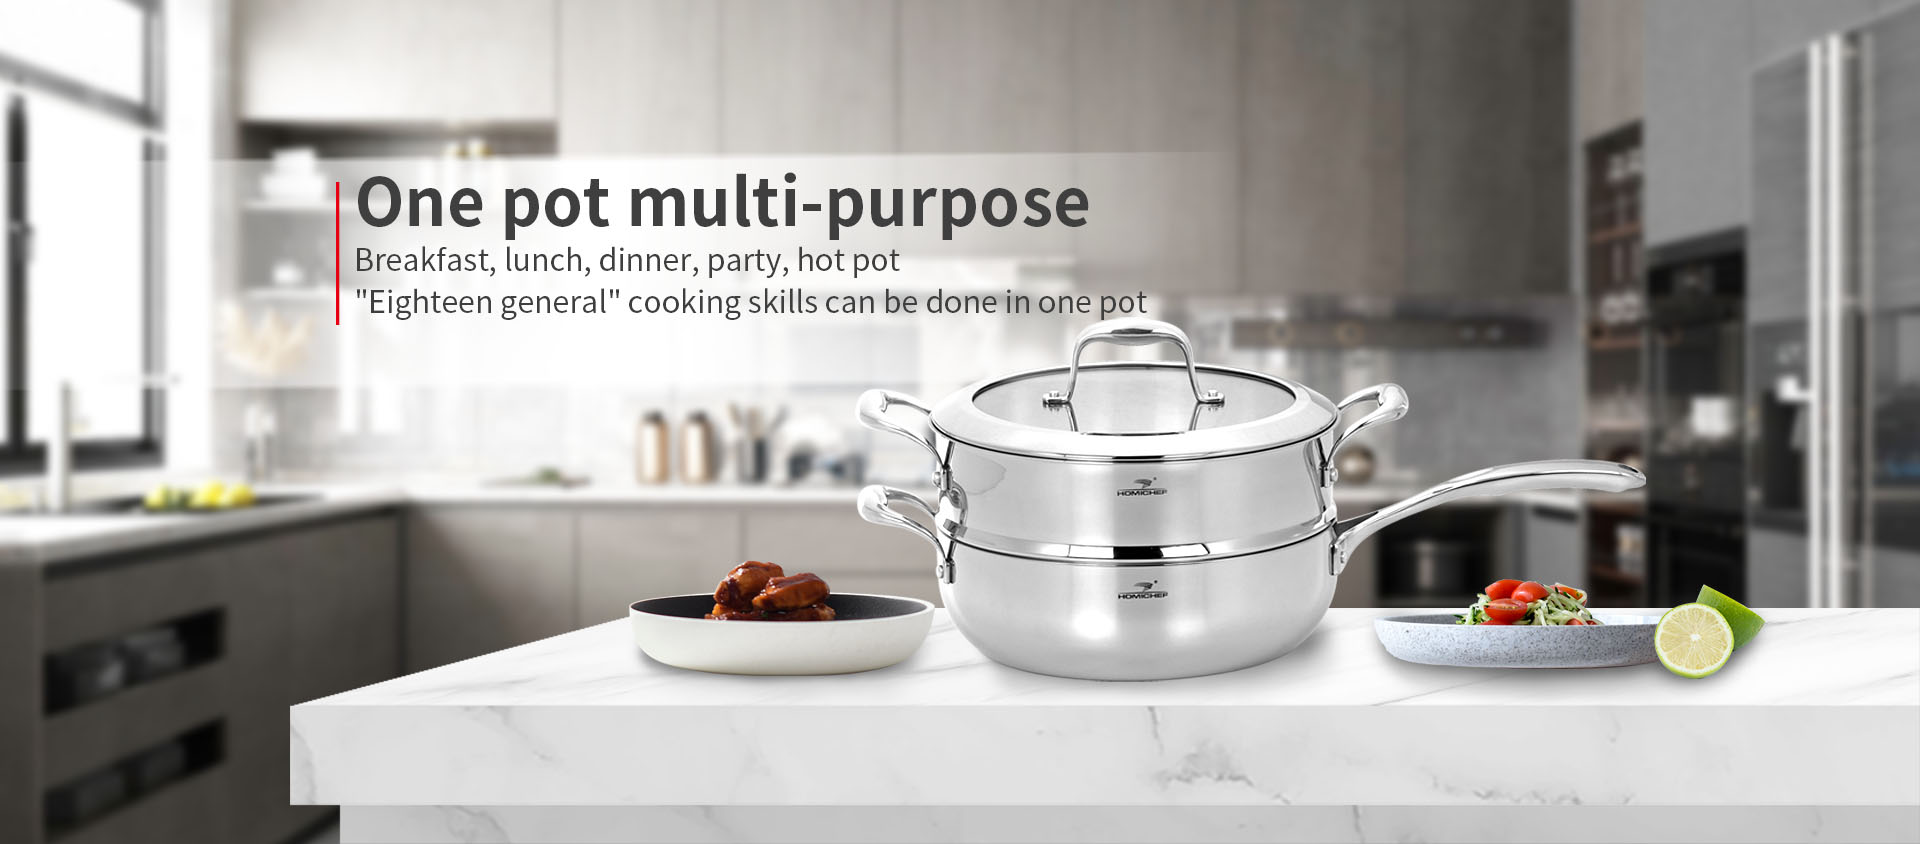 stainless steel pot brand